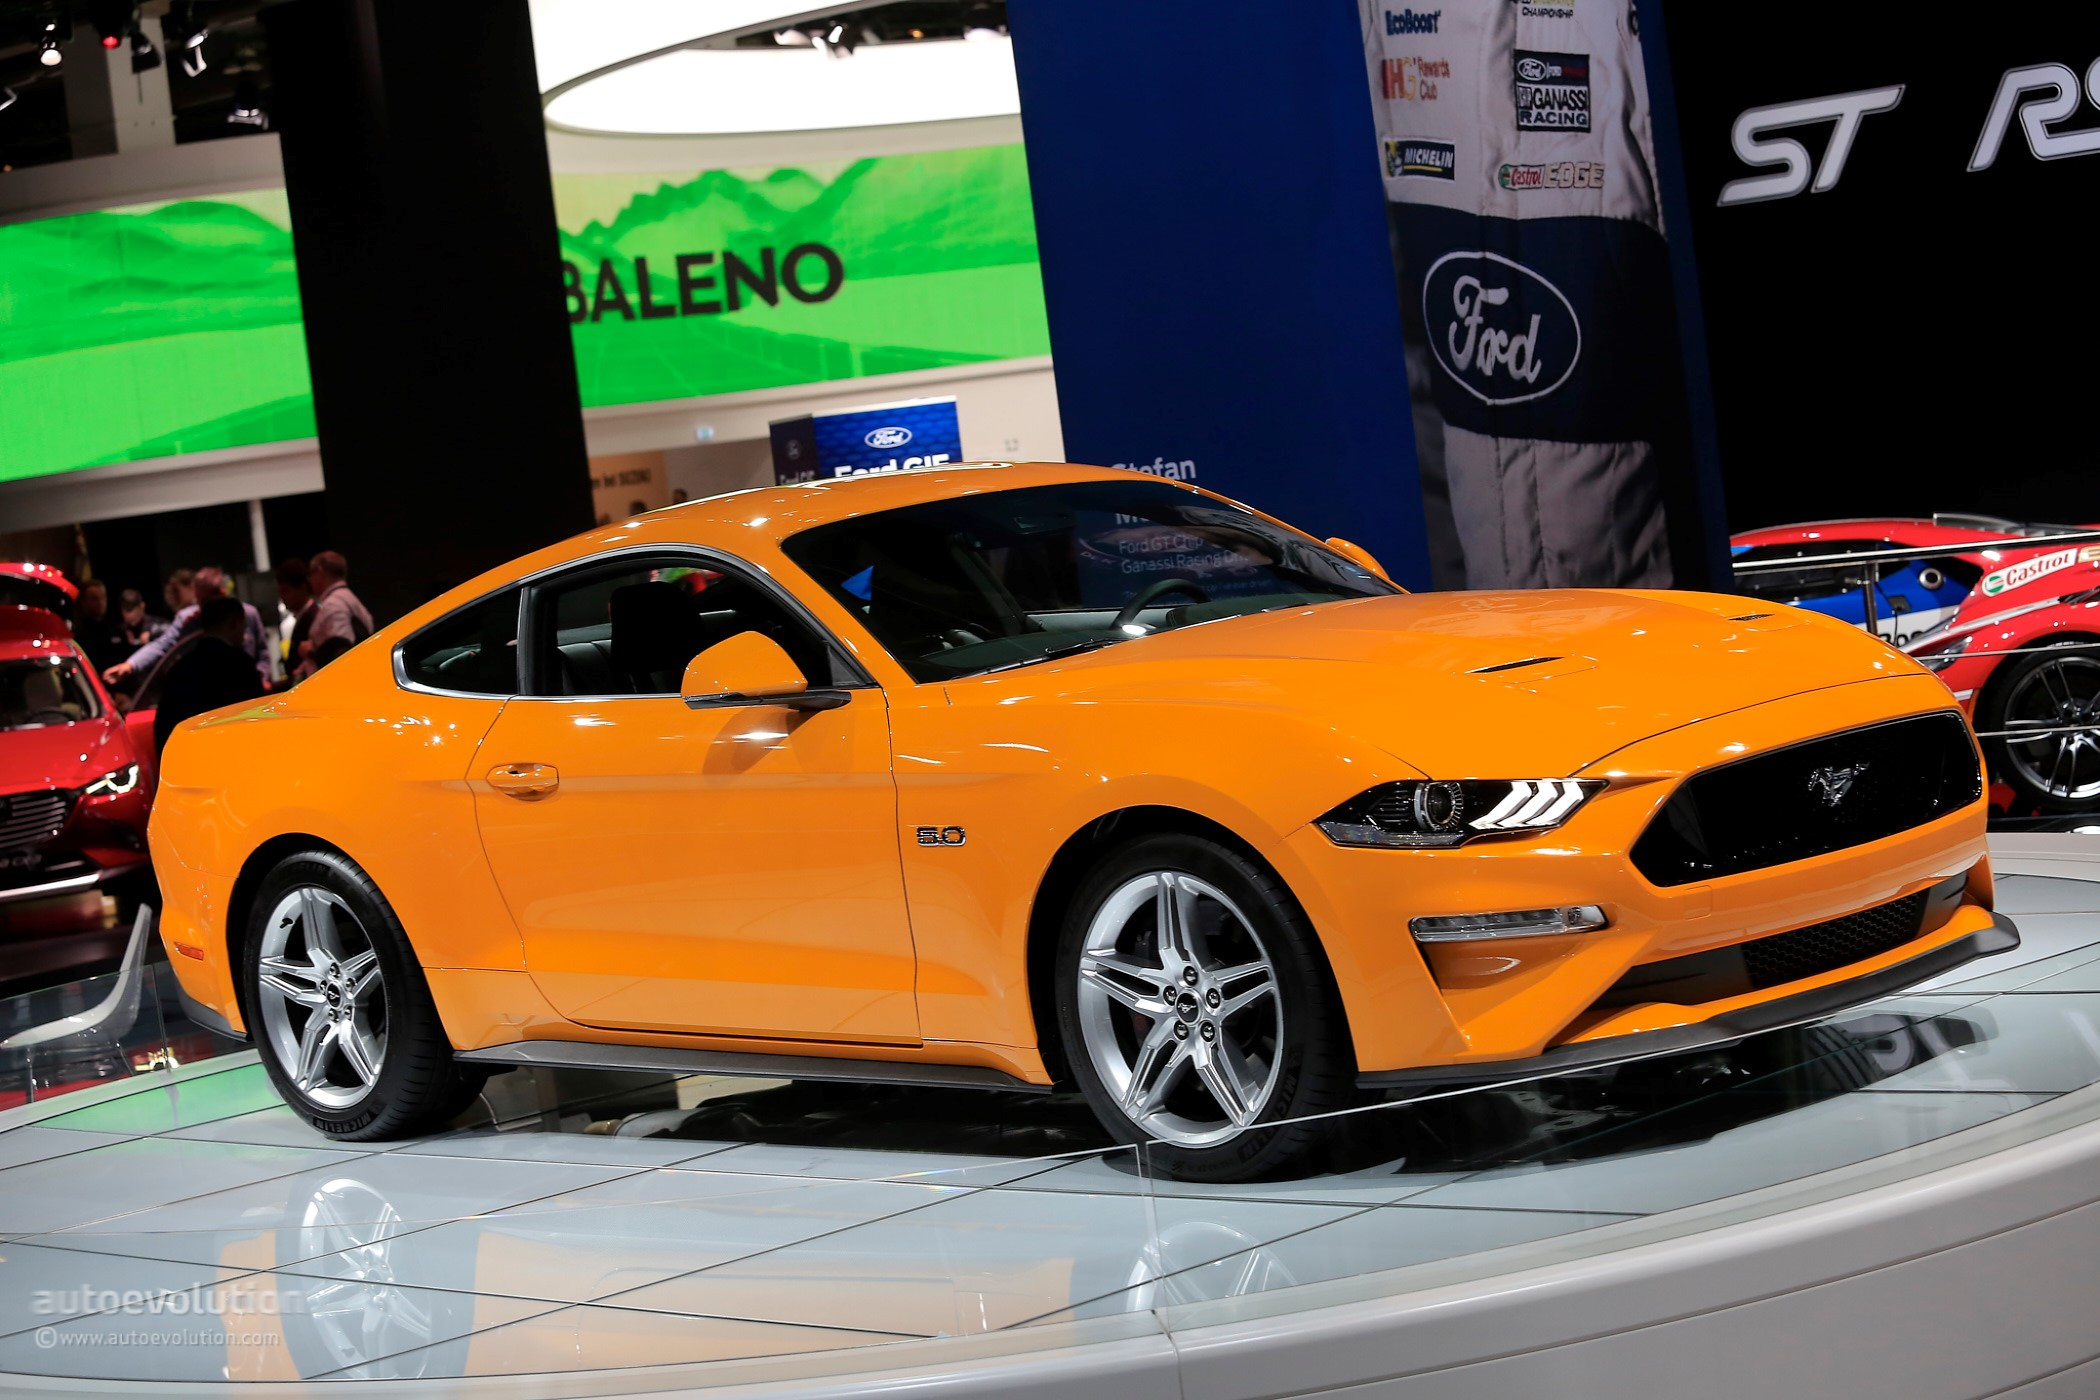 Ford Mustang Hybrid: the rumor mill is still spinning